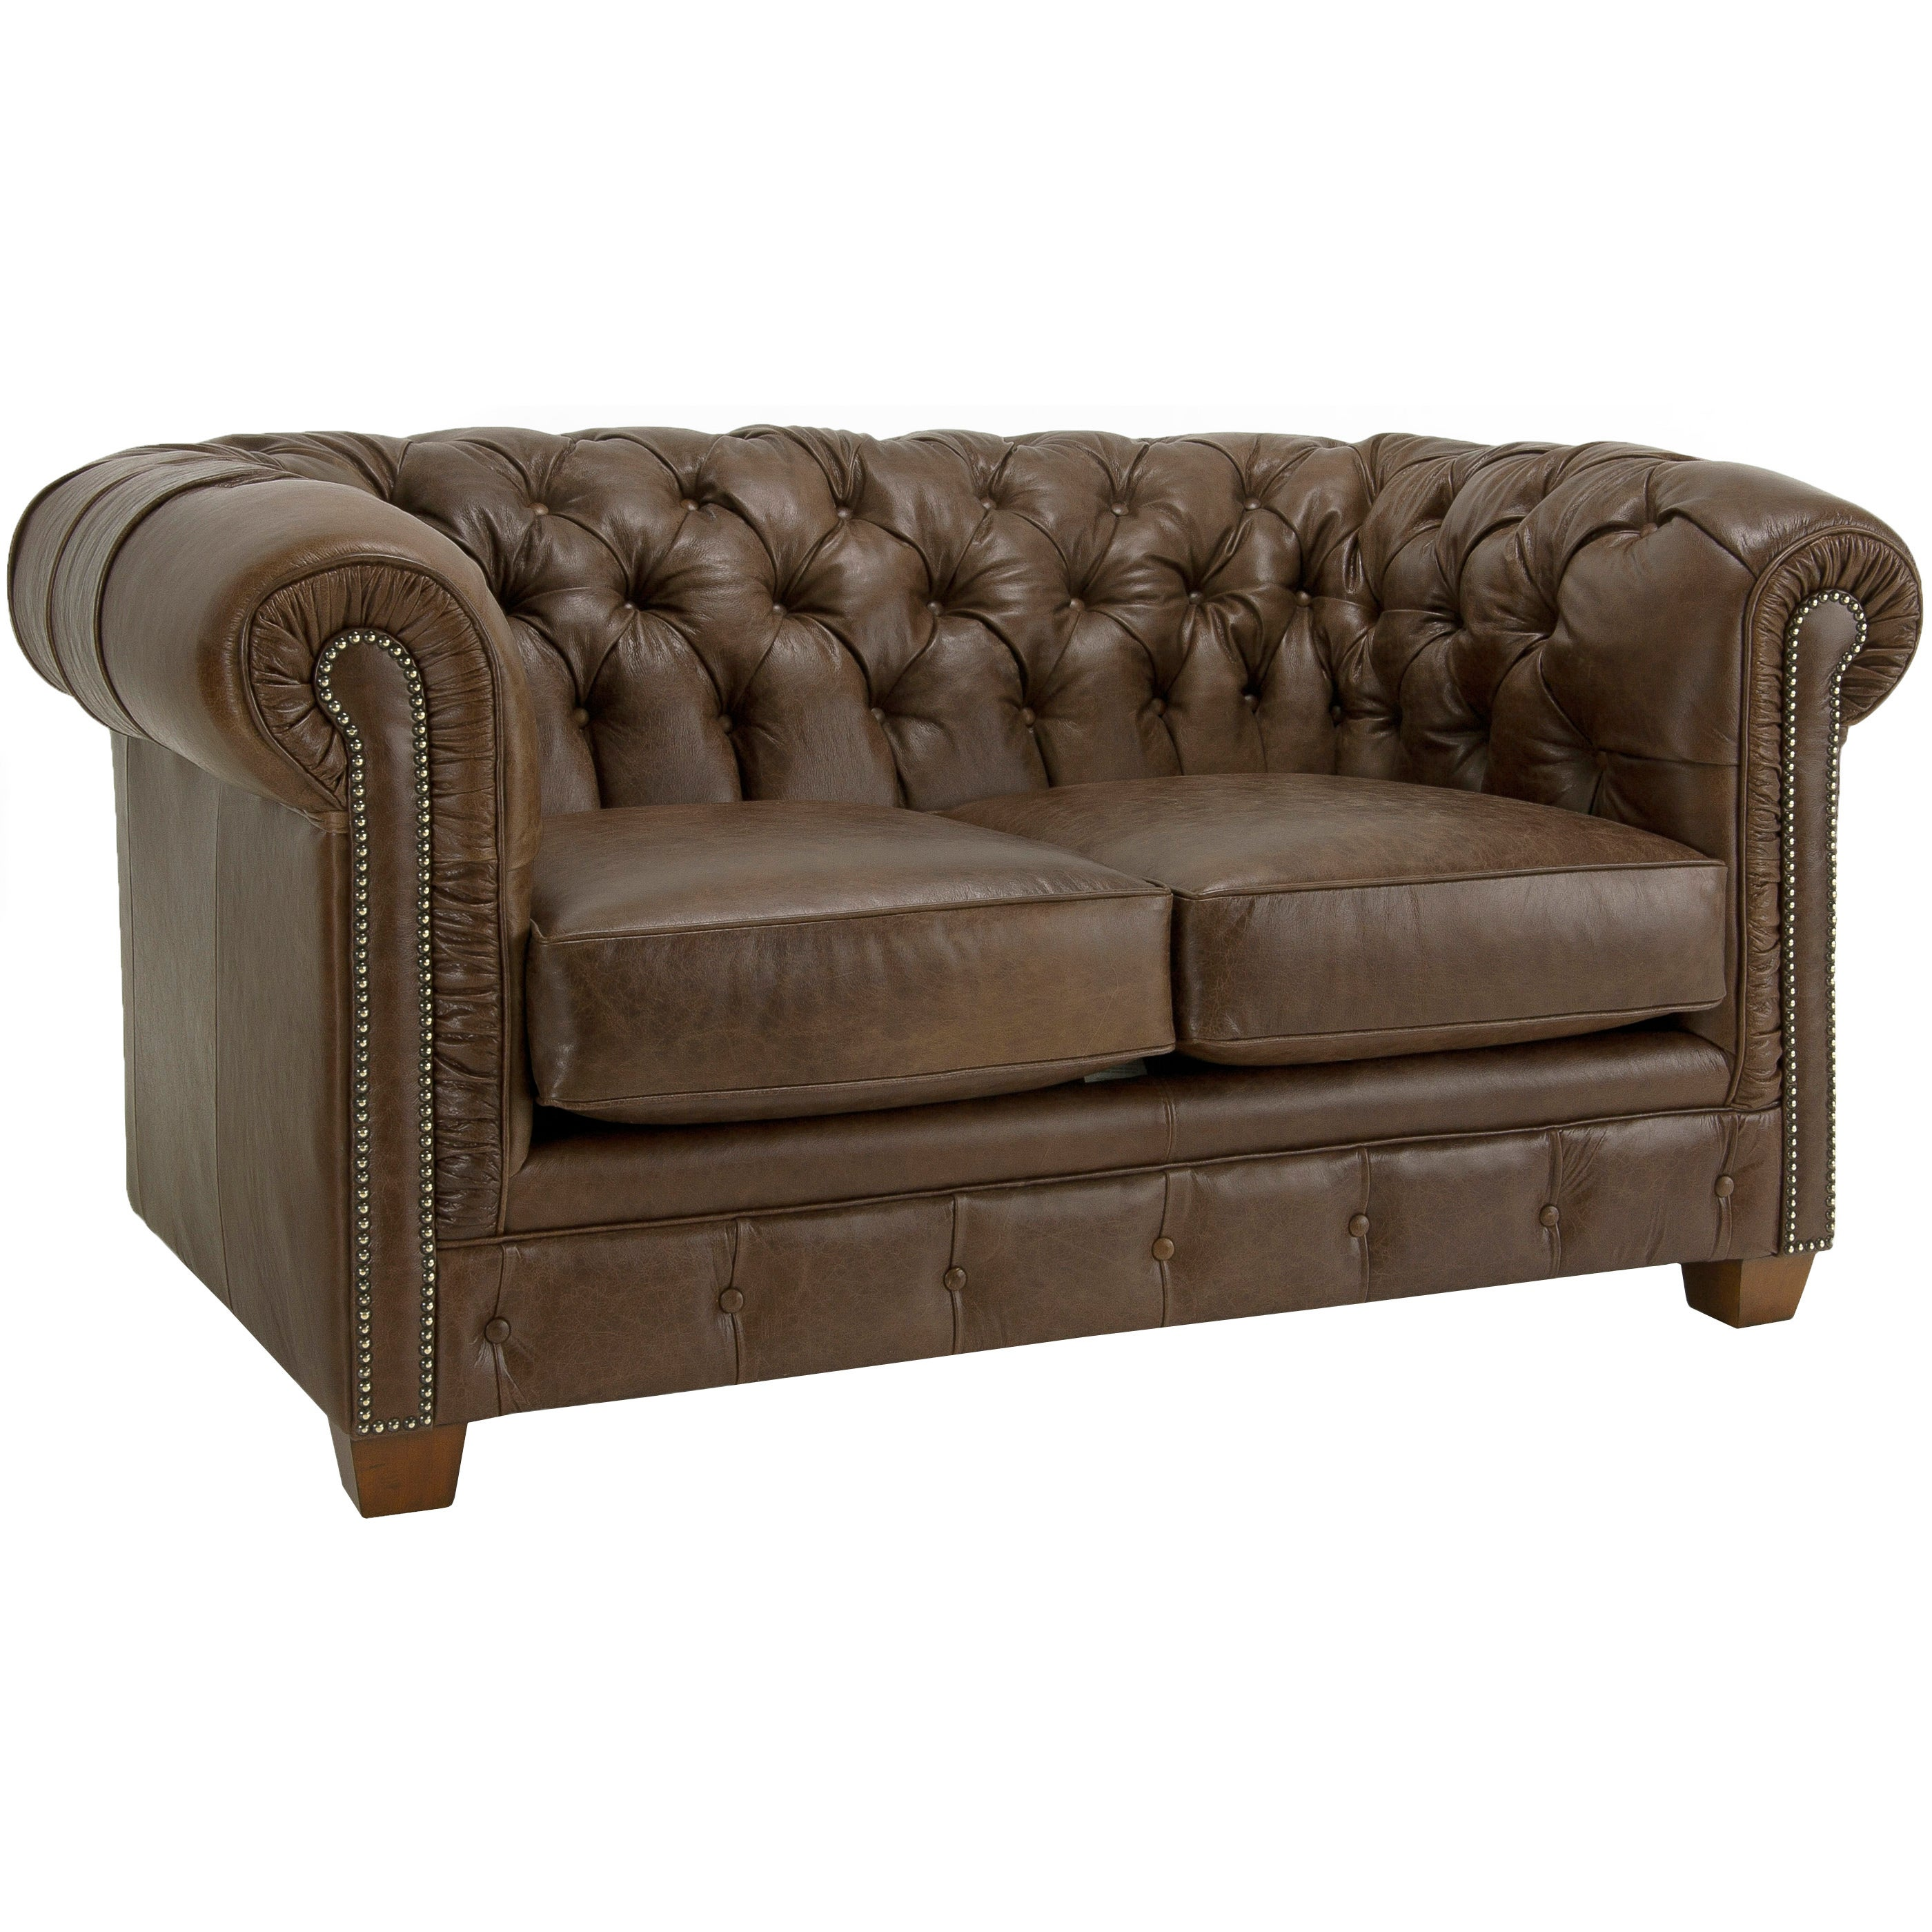 Wondrous Hancock Tufted Distressed Brown Italian Leather Loveseat Caraccident5 Cool Chair Designs And Ideas Caraccident5Info